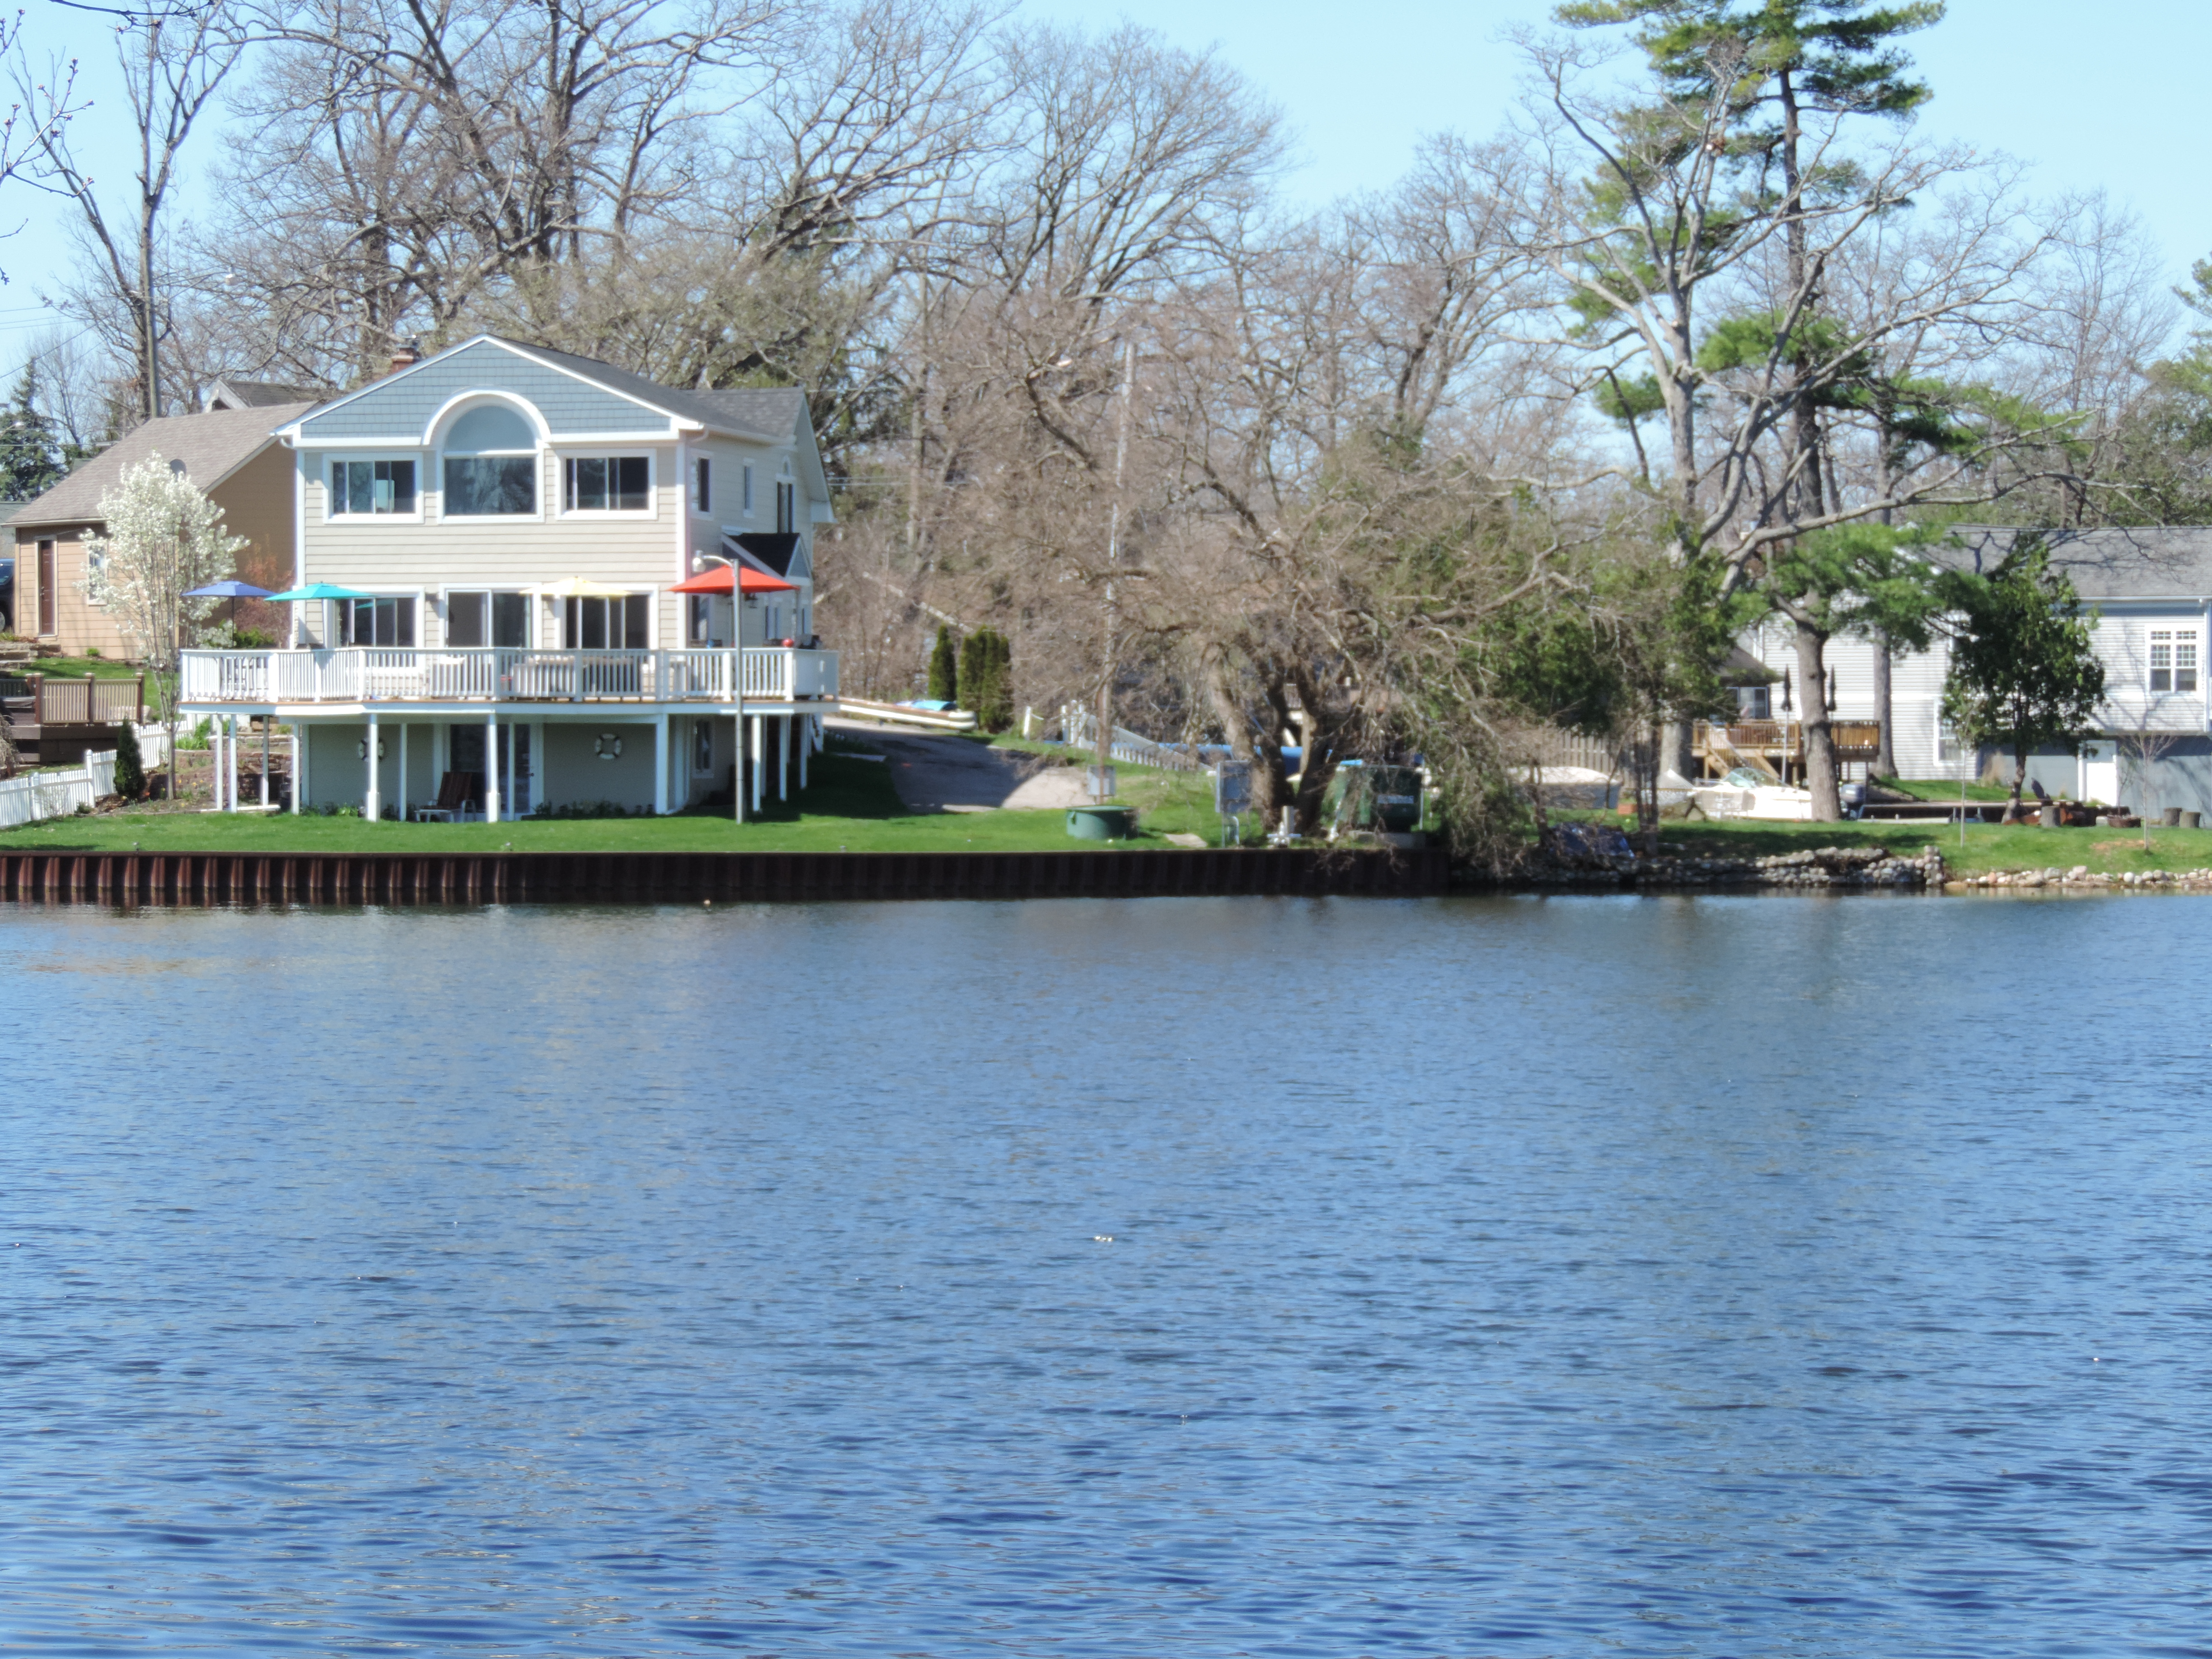 Michigan Lake Real Estate   Lake Homes for sale in Oakland County ...